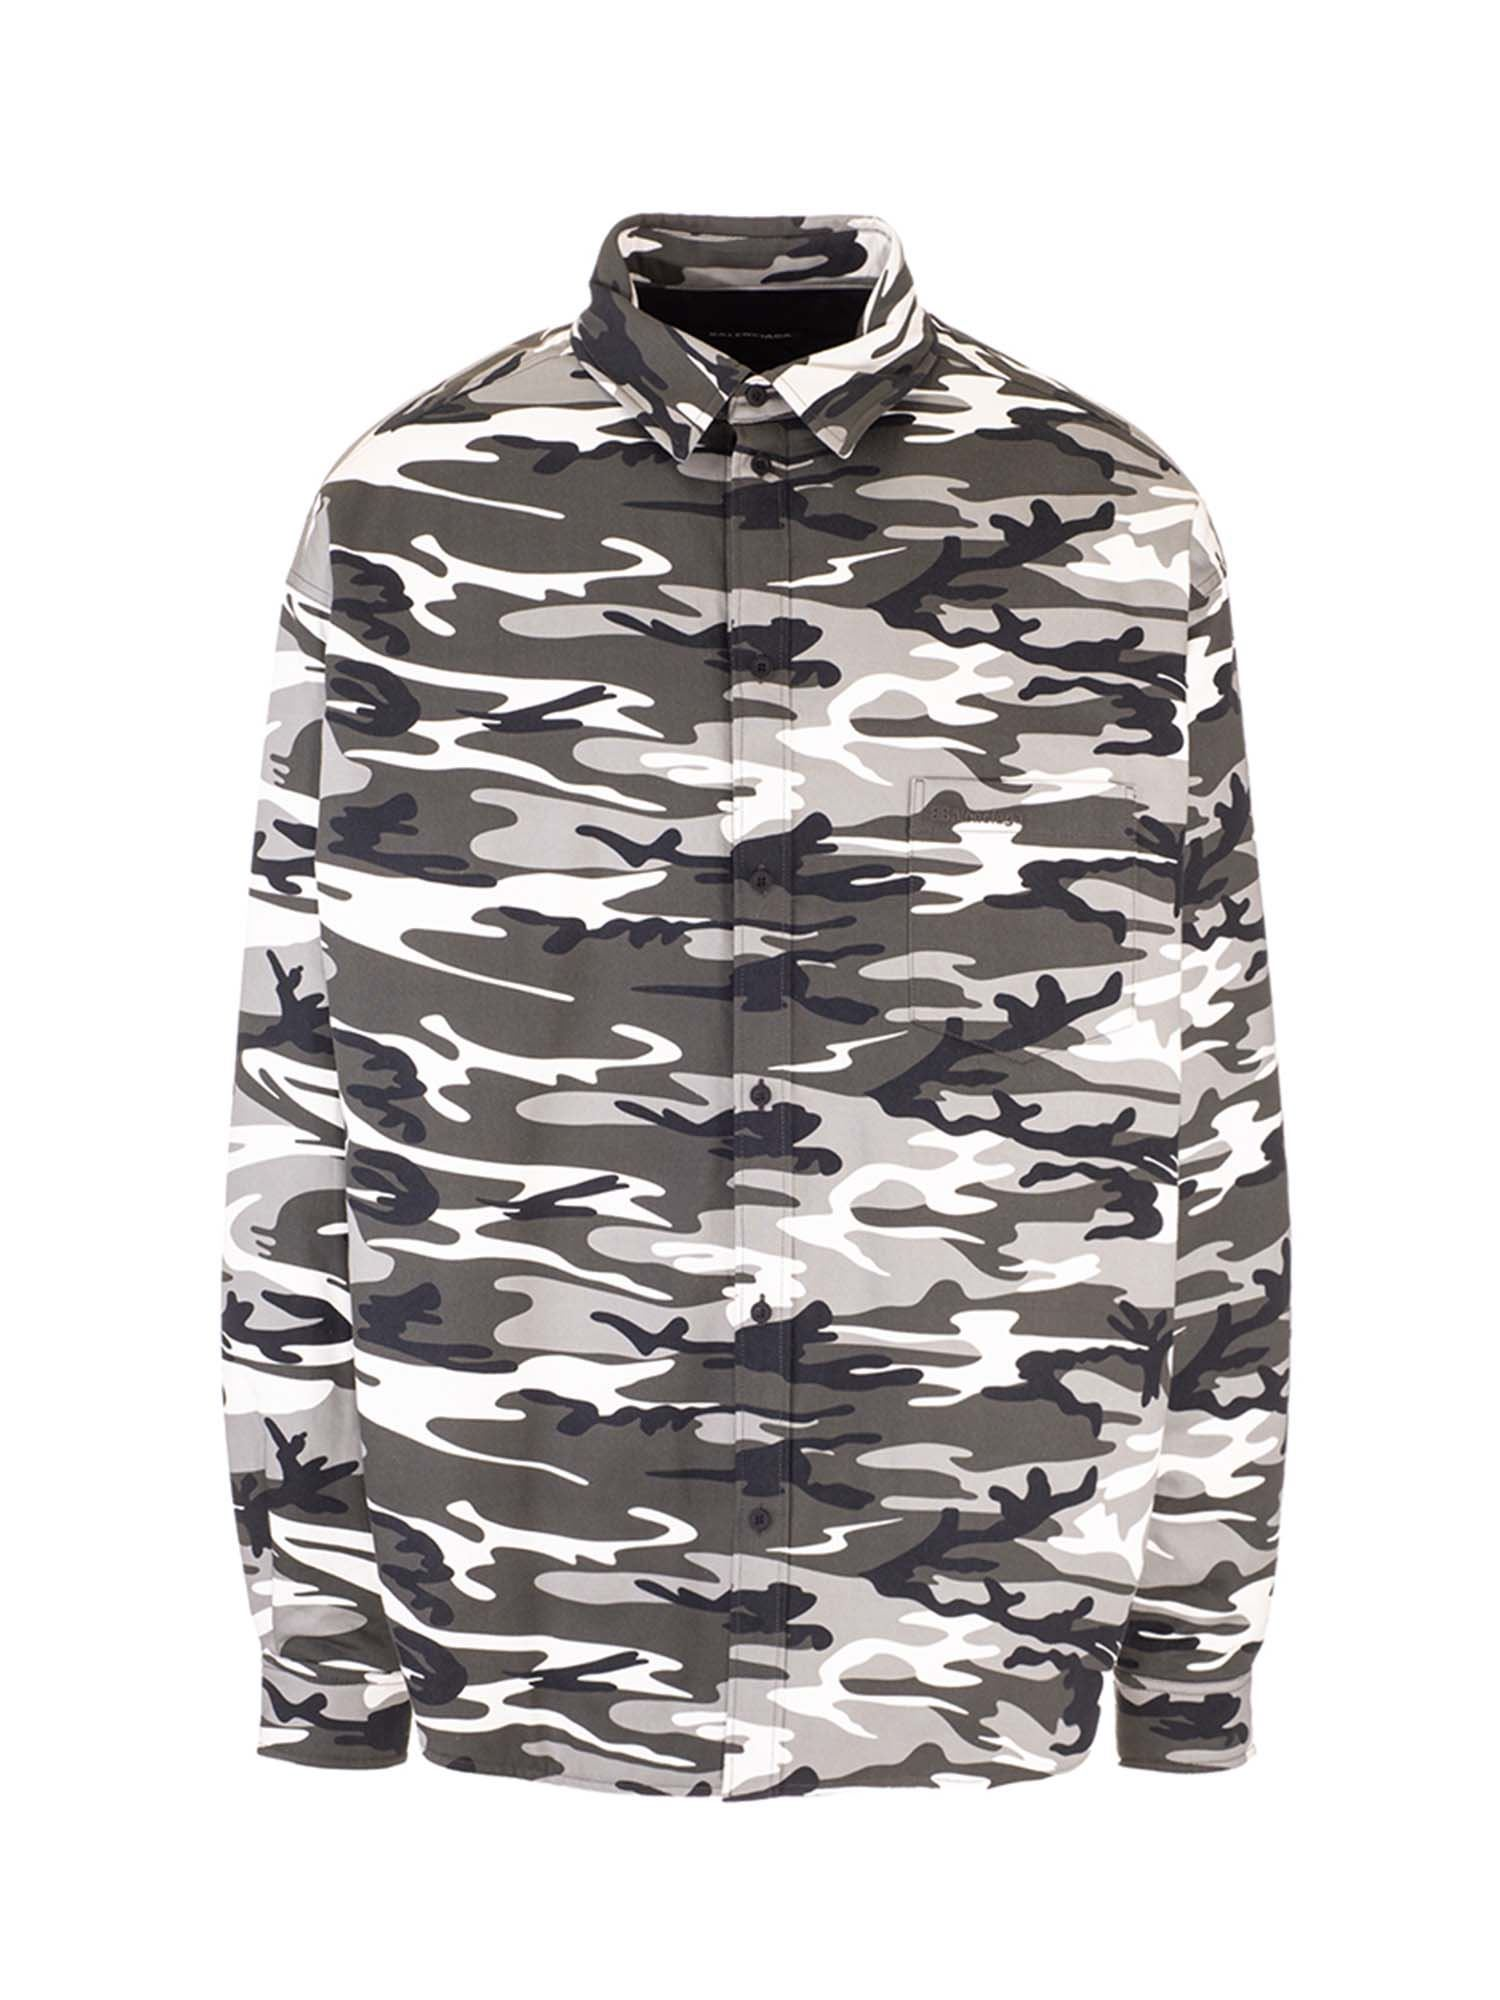 Balenciaga CAMOUFLAGE SHIRT IN GRAY